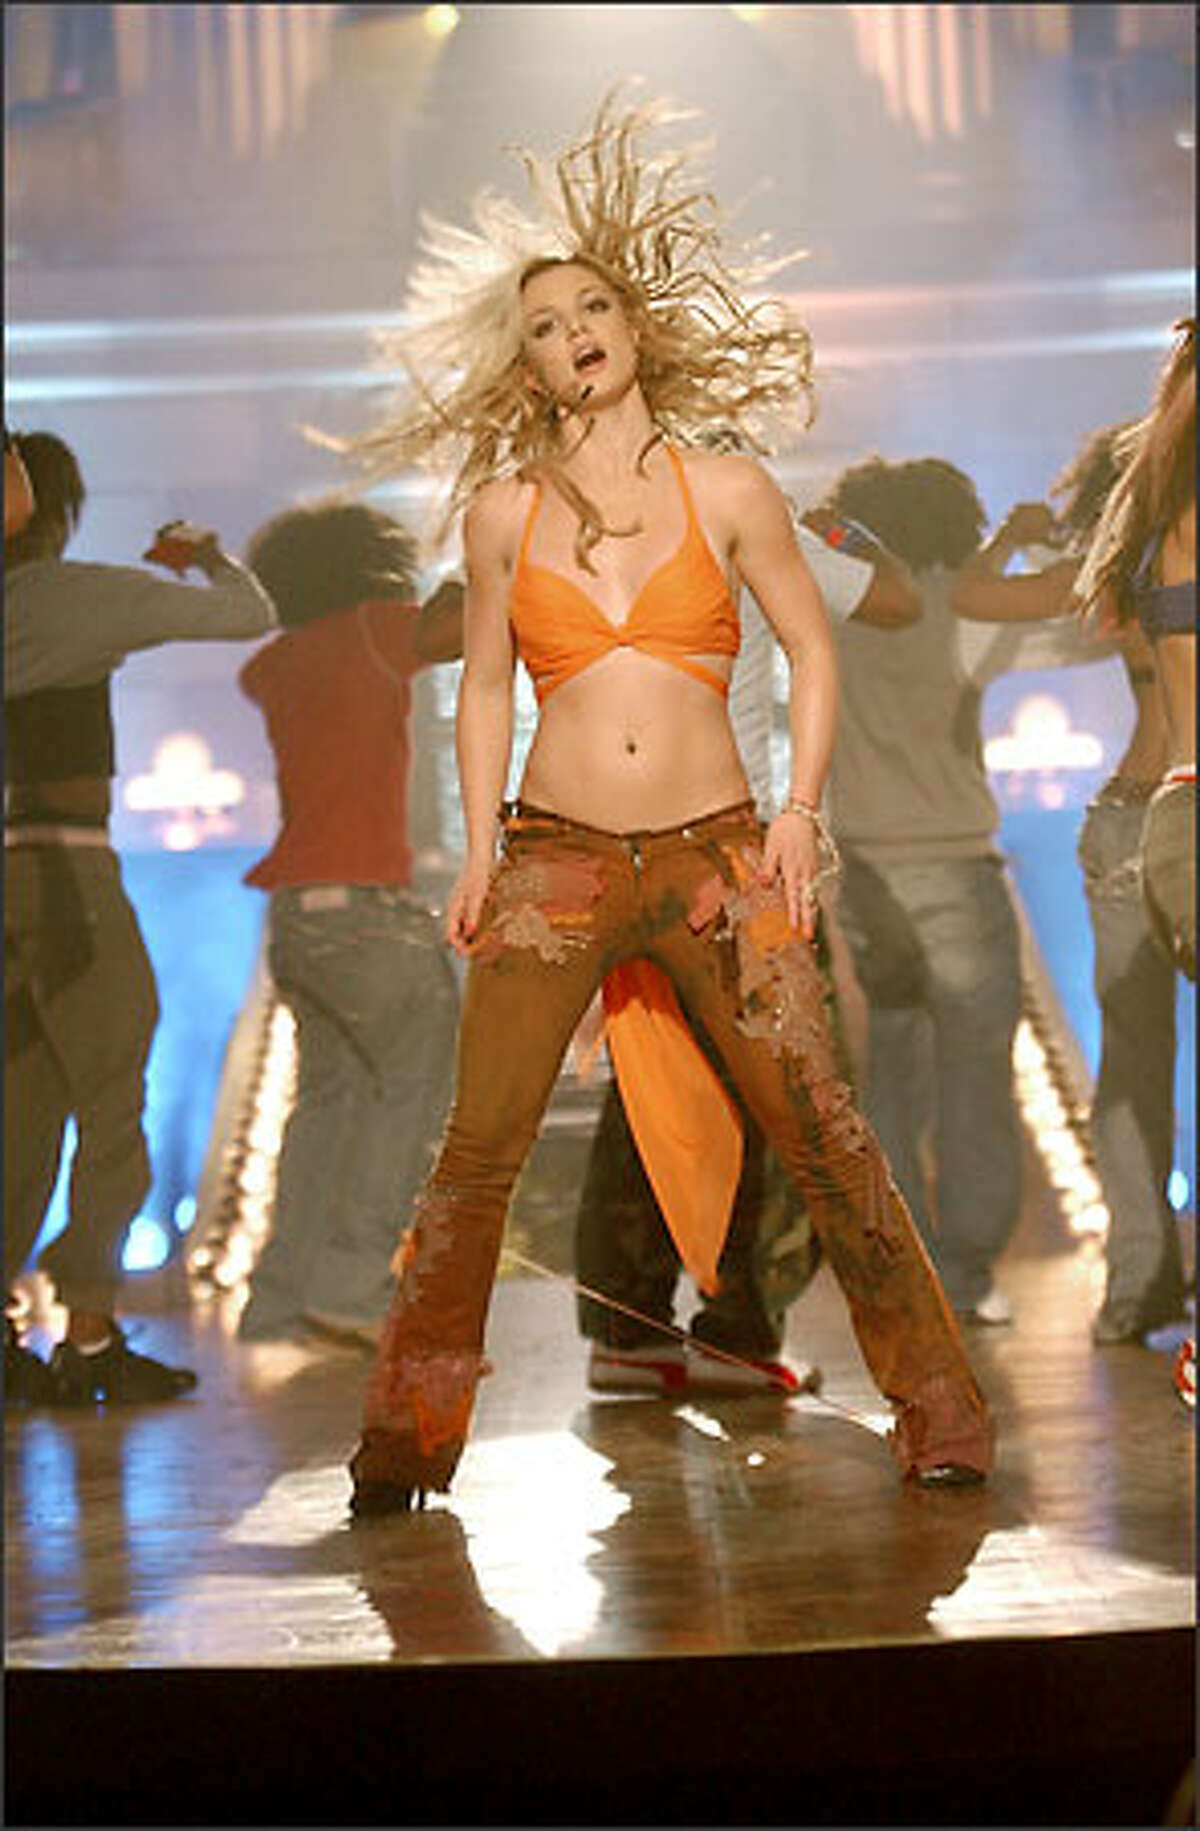 """Twenty-one-year-old singing sensation Britney Spears stars in an original primetime special Monday. """"Britney Spears: In the Zone"""" will feature exclusive performance footage interwoven with a behind-the-scenes look at her hectic life."""